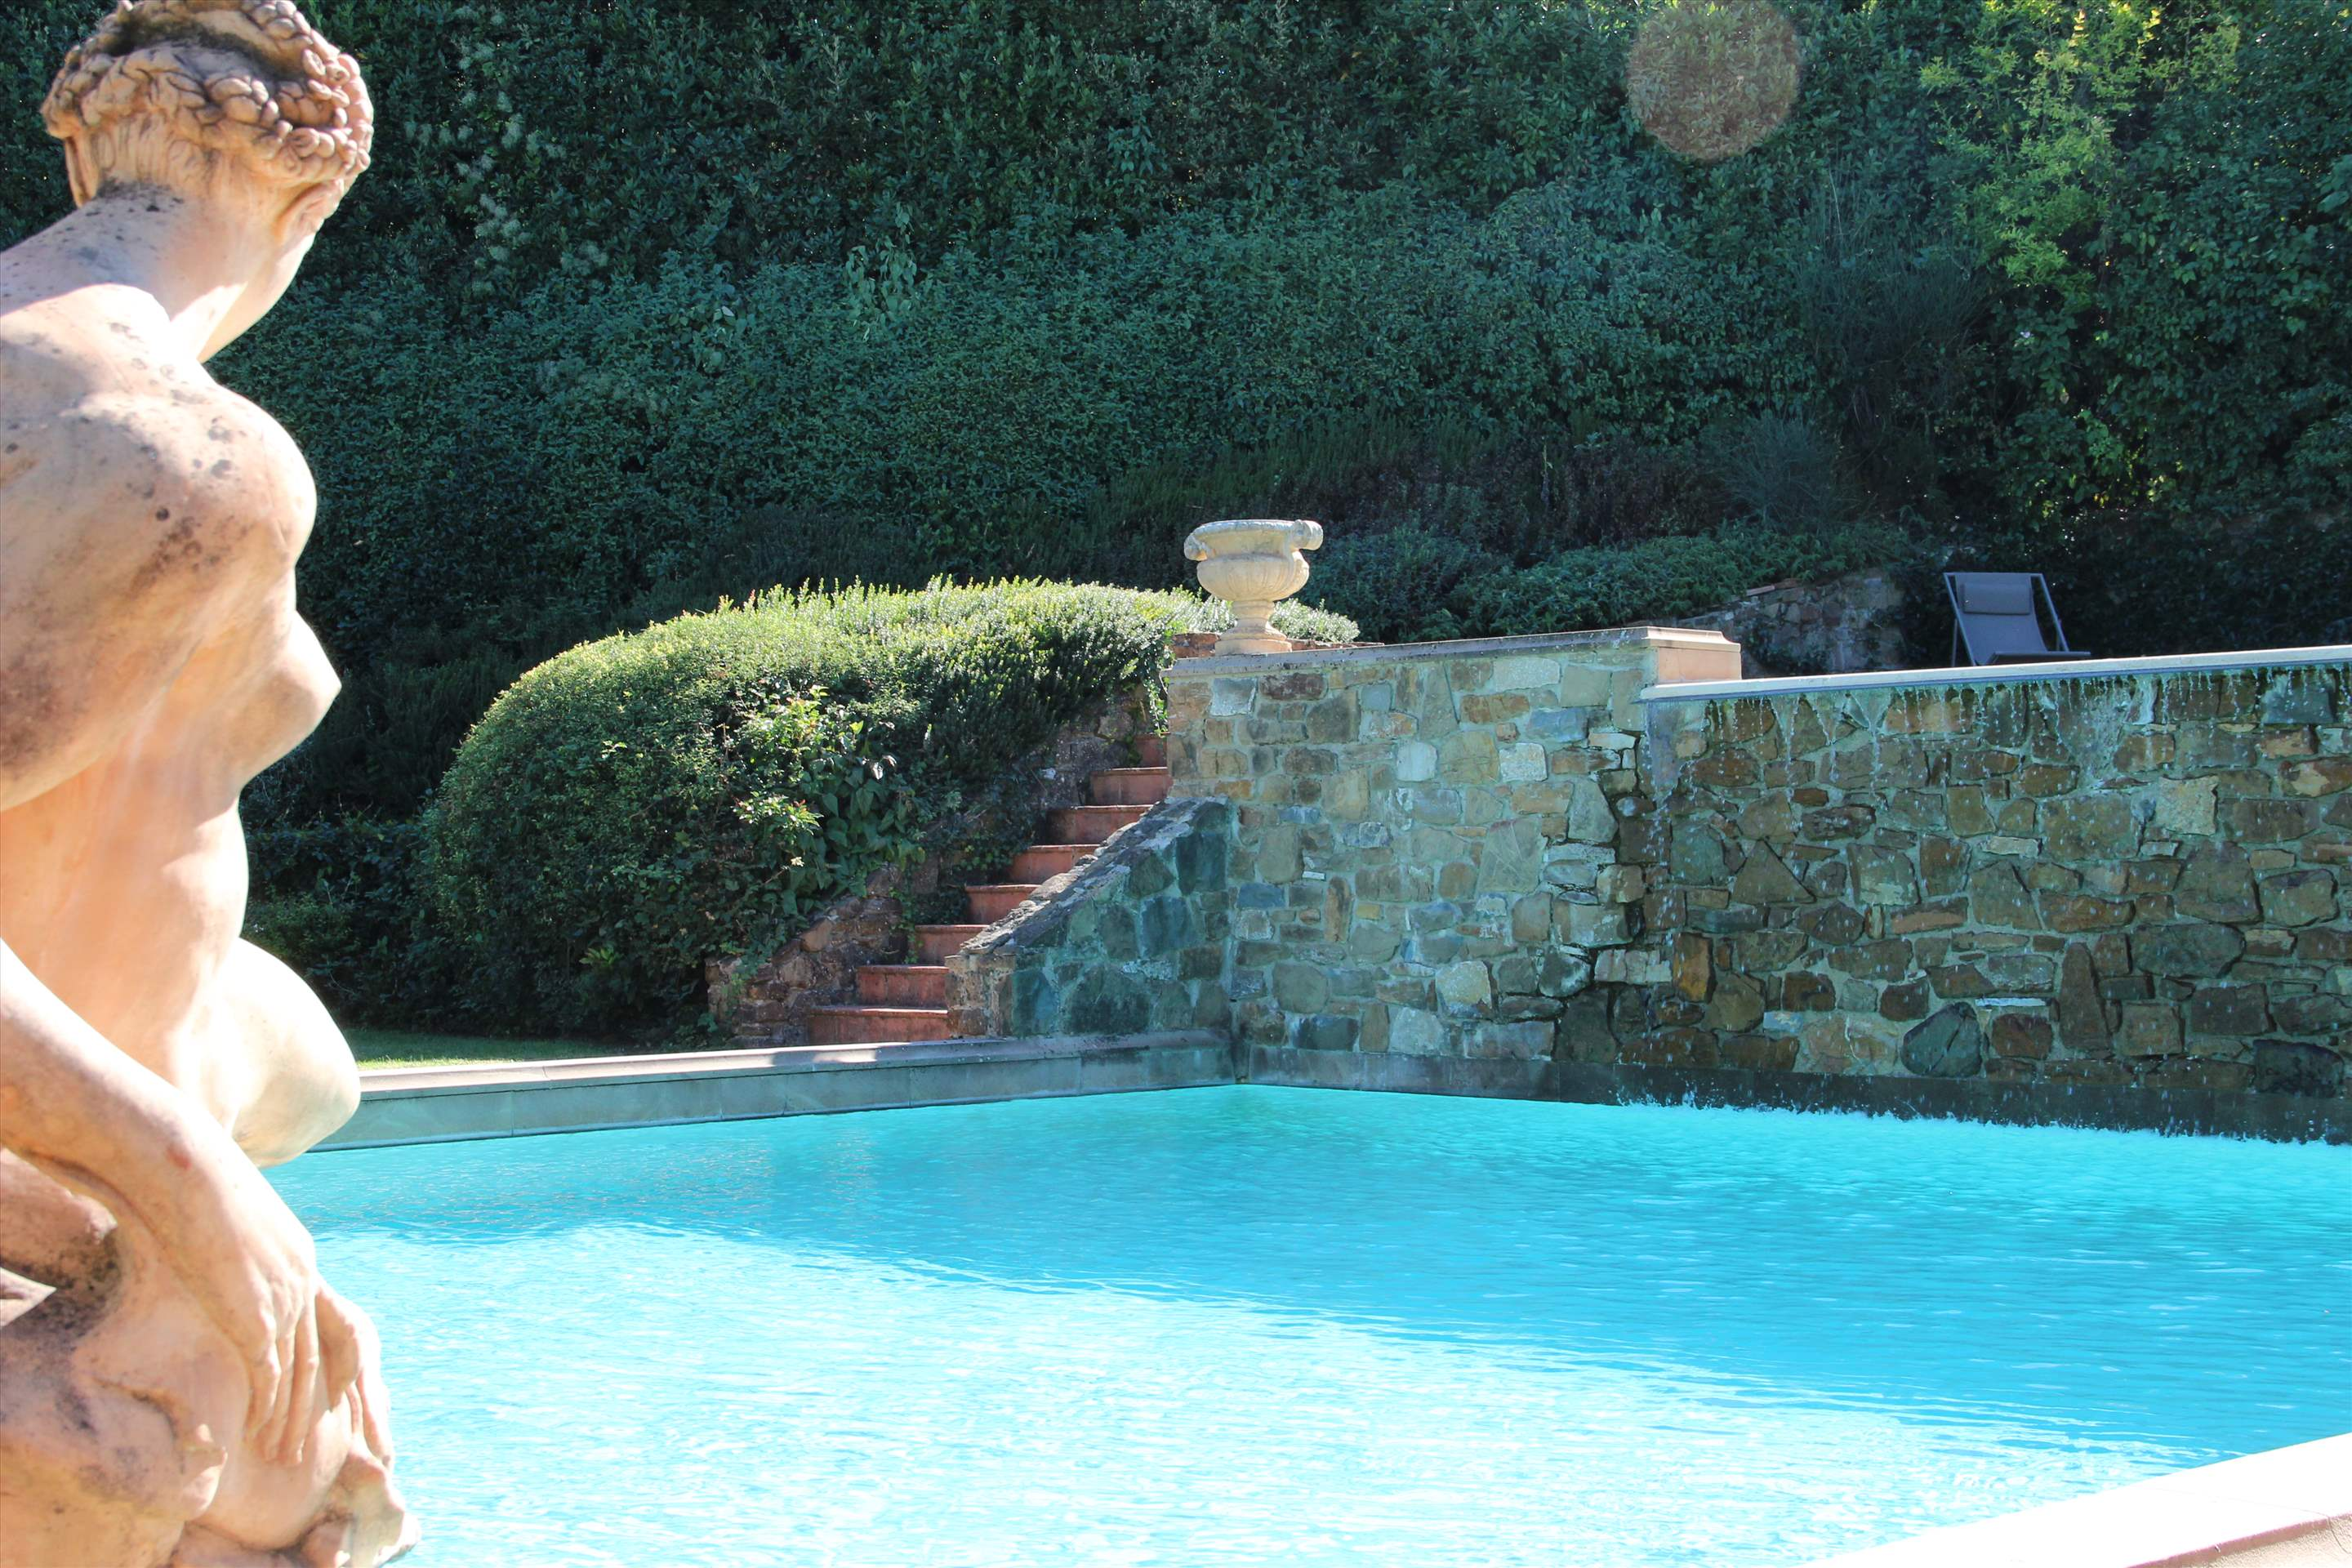 Villa Tuscan, 6 (+2), 3 bedroom villa in Chianti & Countryside, Tuscany Photo #32